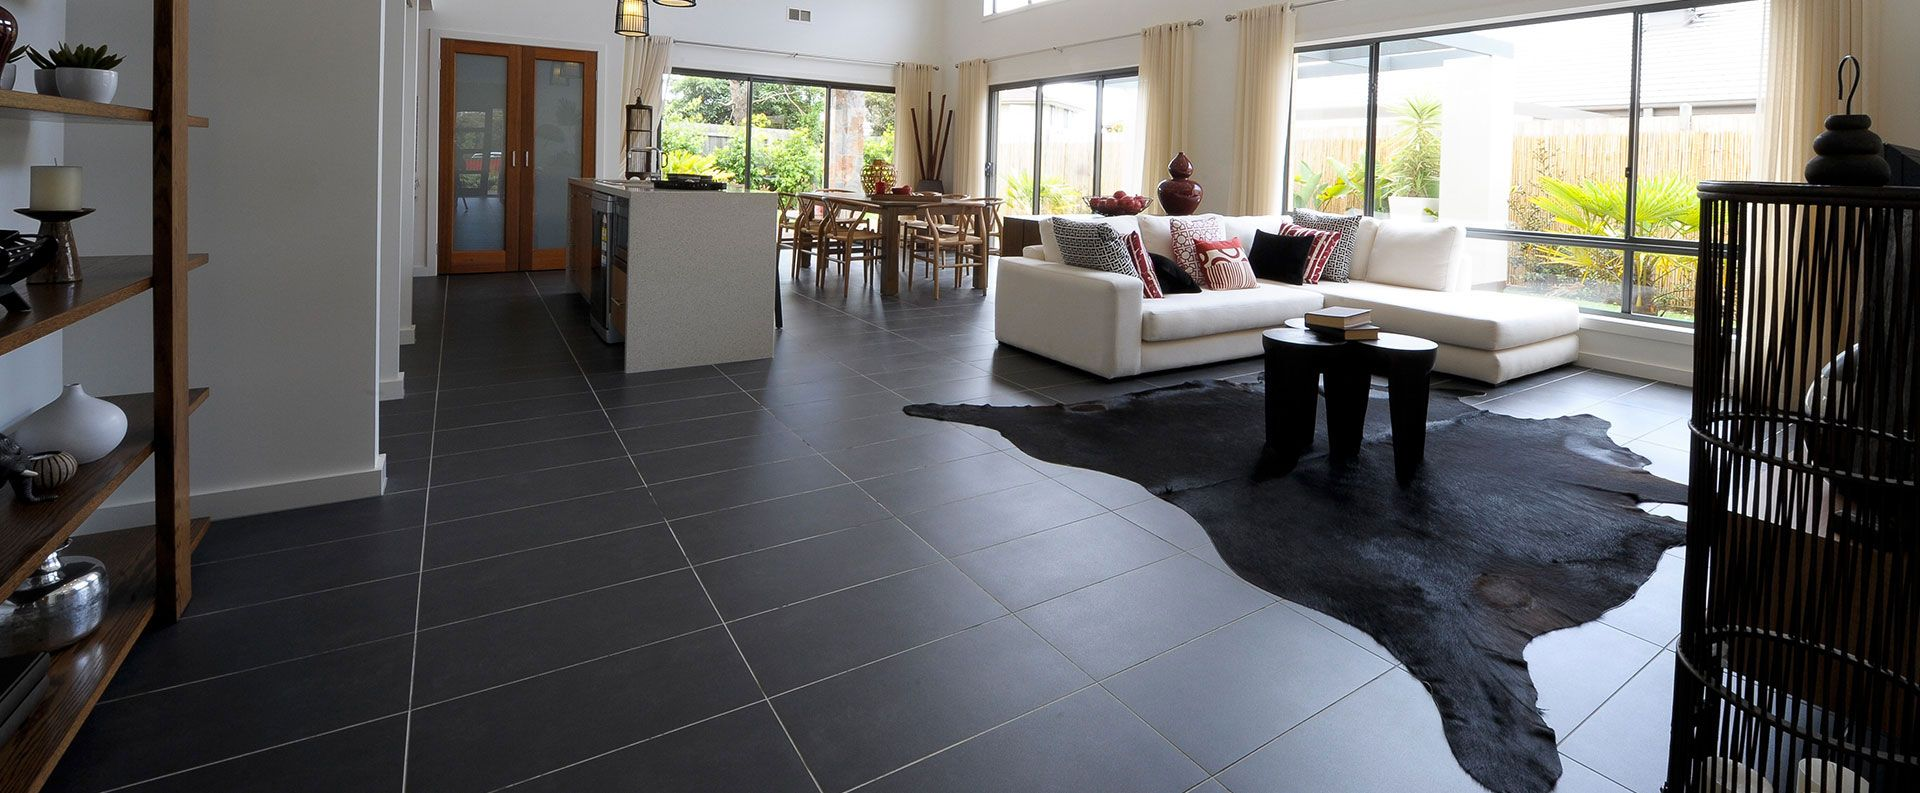 Are you want to buy porcelian floor tiles online? Shades of Stone ...